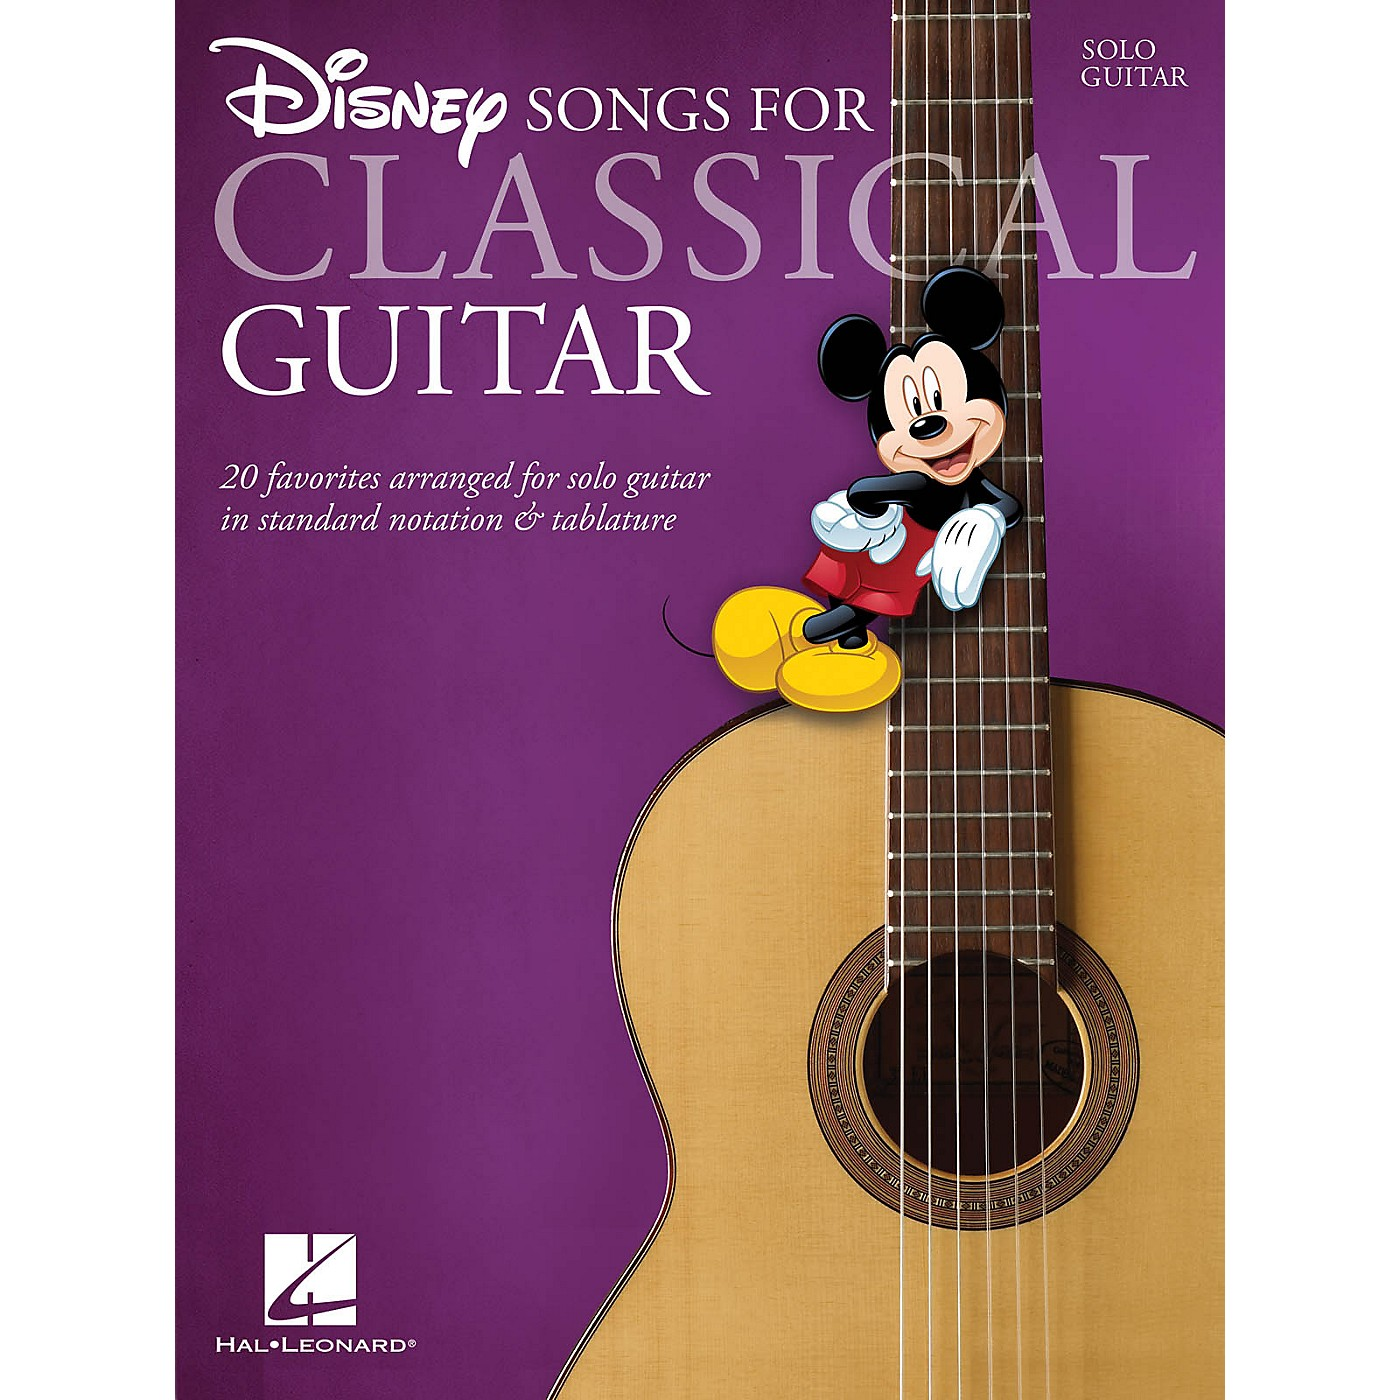 Hal Leonard Disney Songs for Classical Guitar (Standard Notation & Tab) Guitar Solo Series Softcover thumbnail